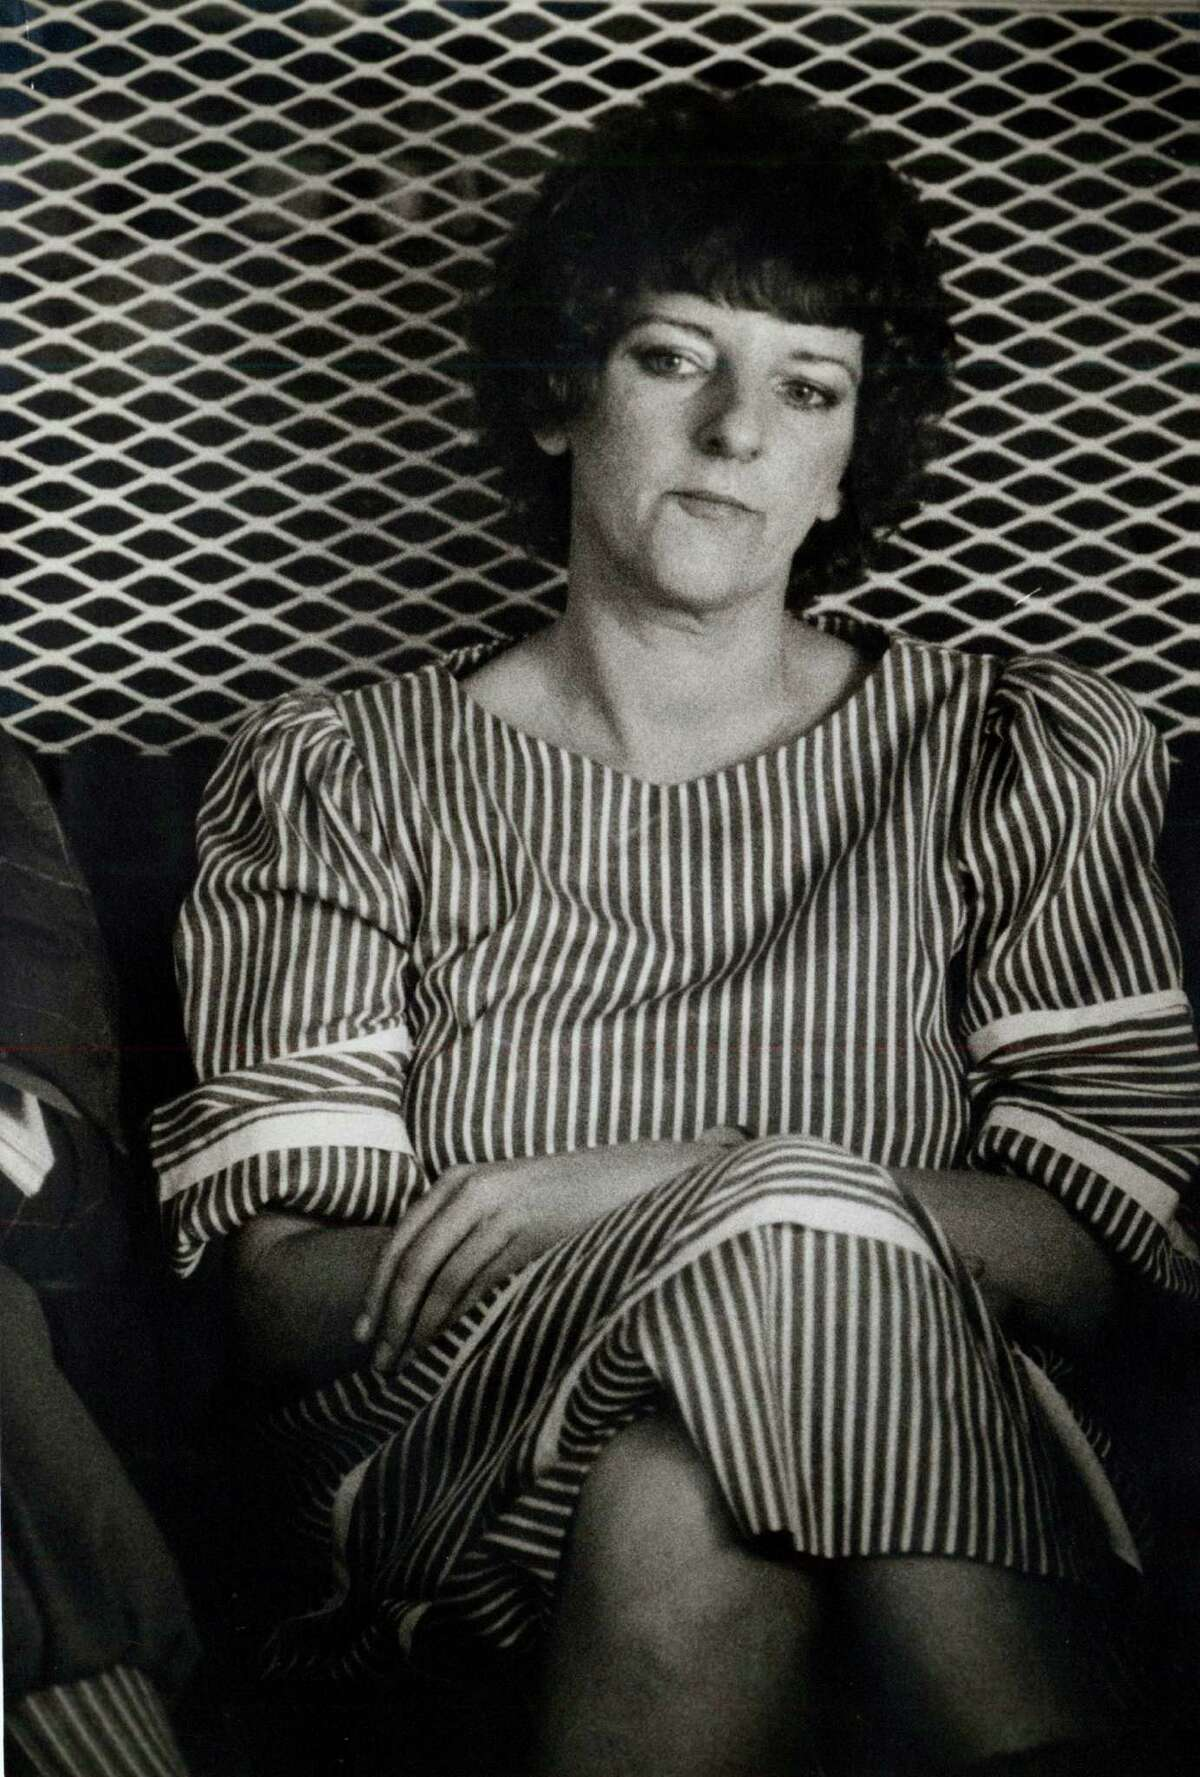 1. Former nurse Genene Jones was sentenced in 1984 to life in prison for killing a 15-month-old child.